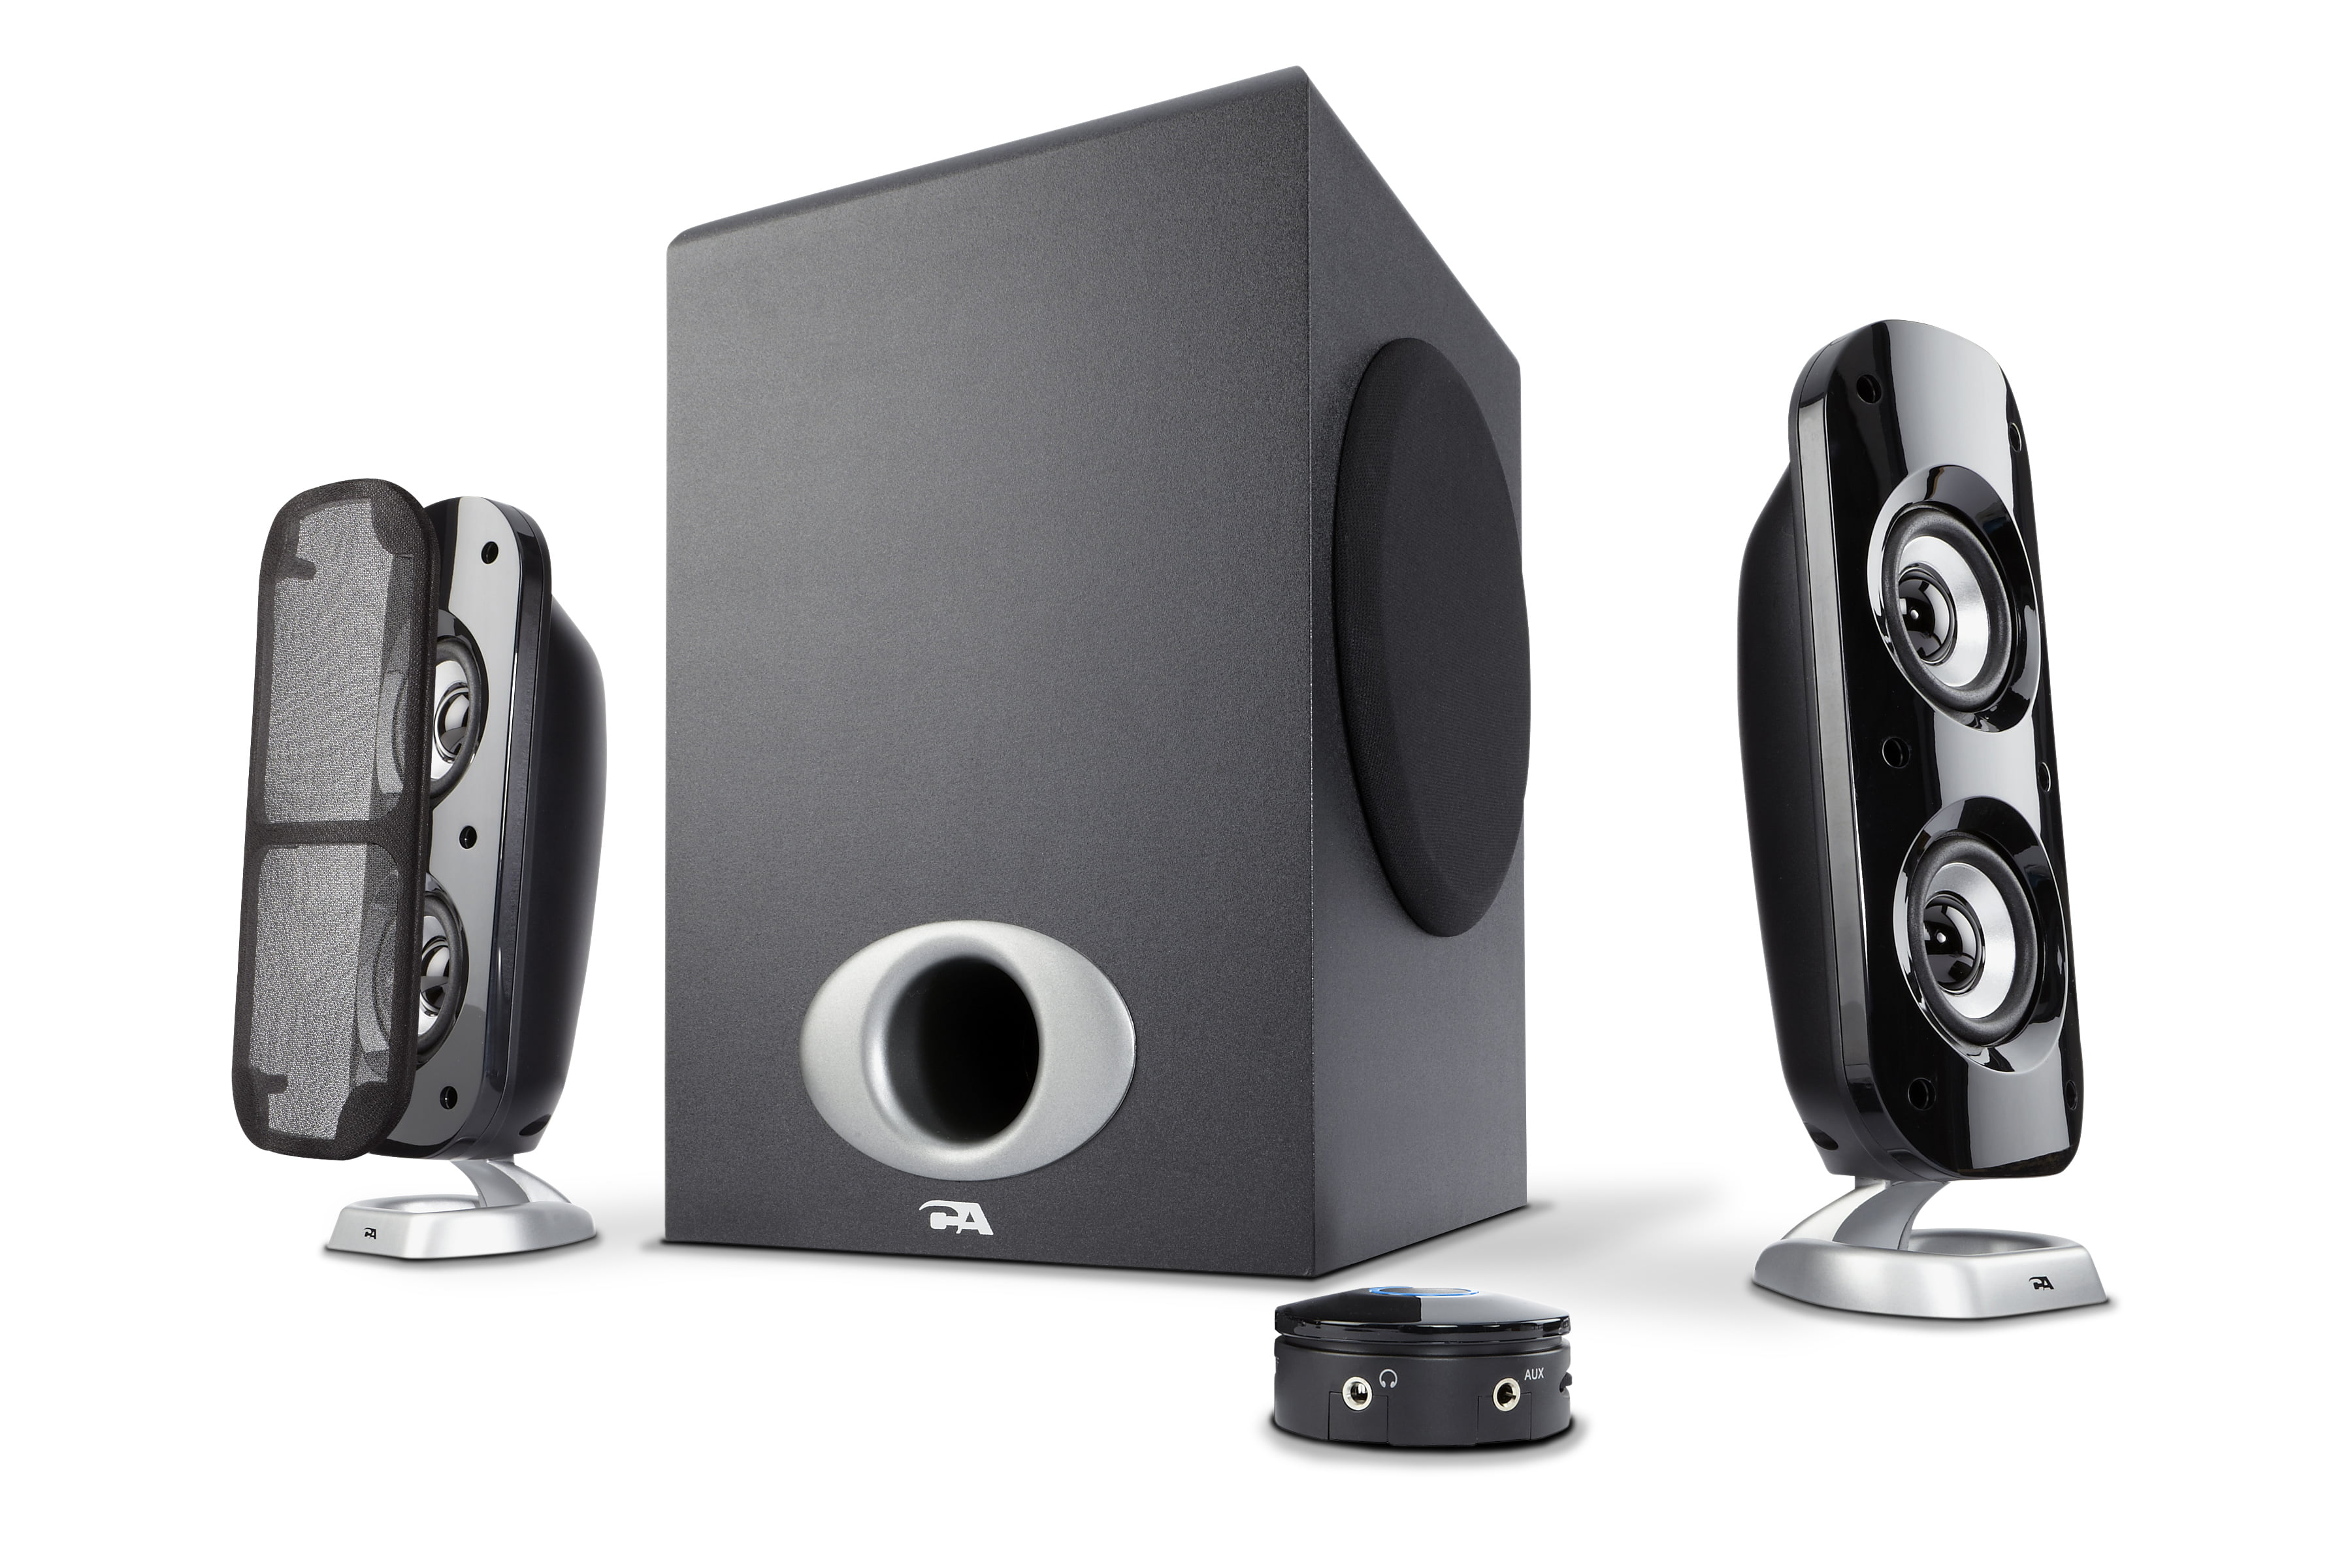 Cyber Acoustics 76W Computer Speakers with Subwoofer, a Powerful 2.1 Multimedia System for Gaming, Music, and... by Cyber Acoustics